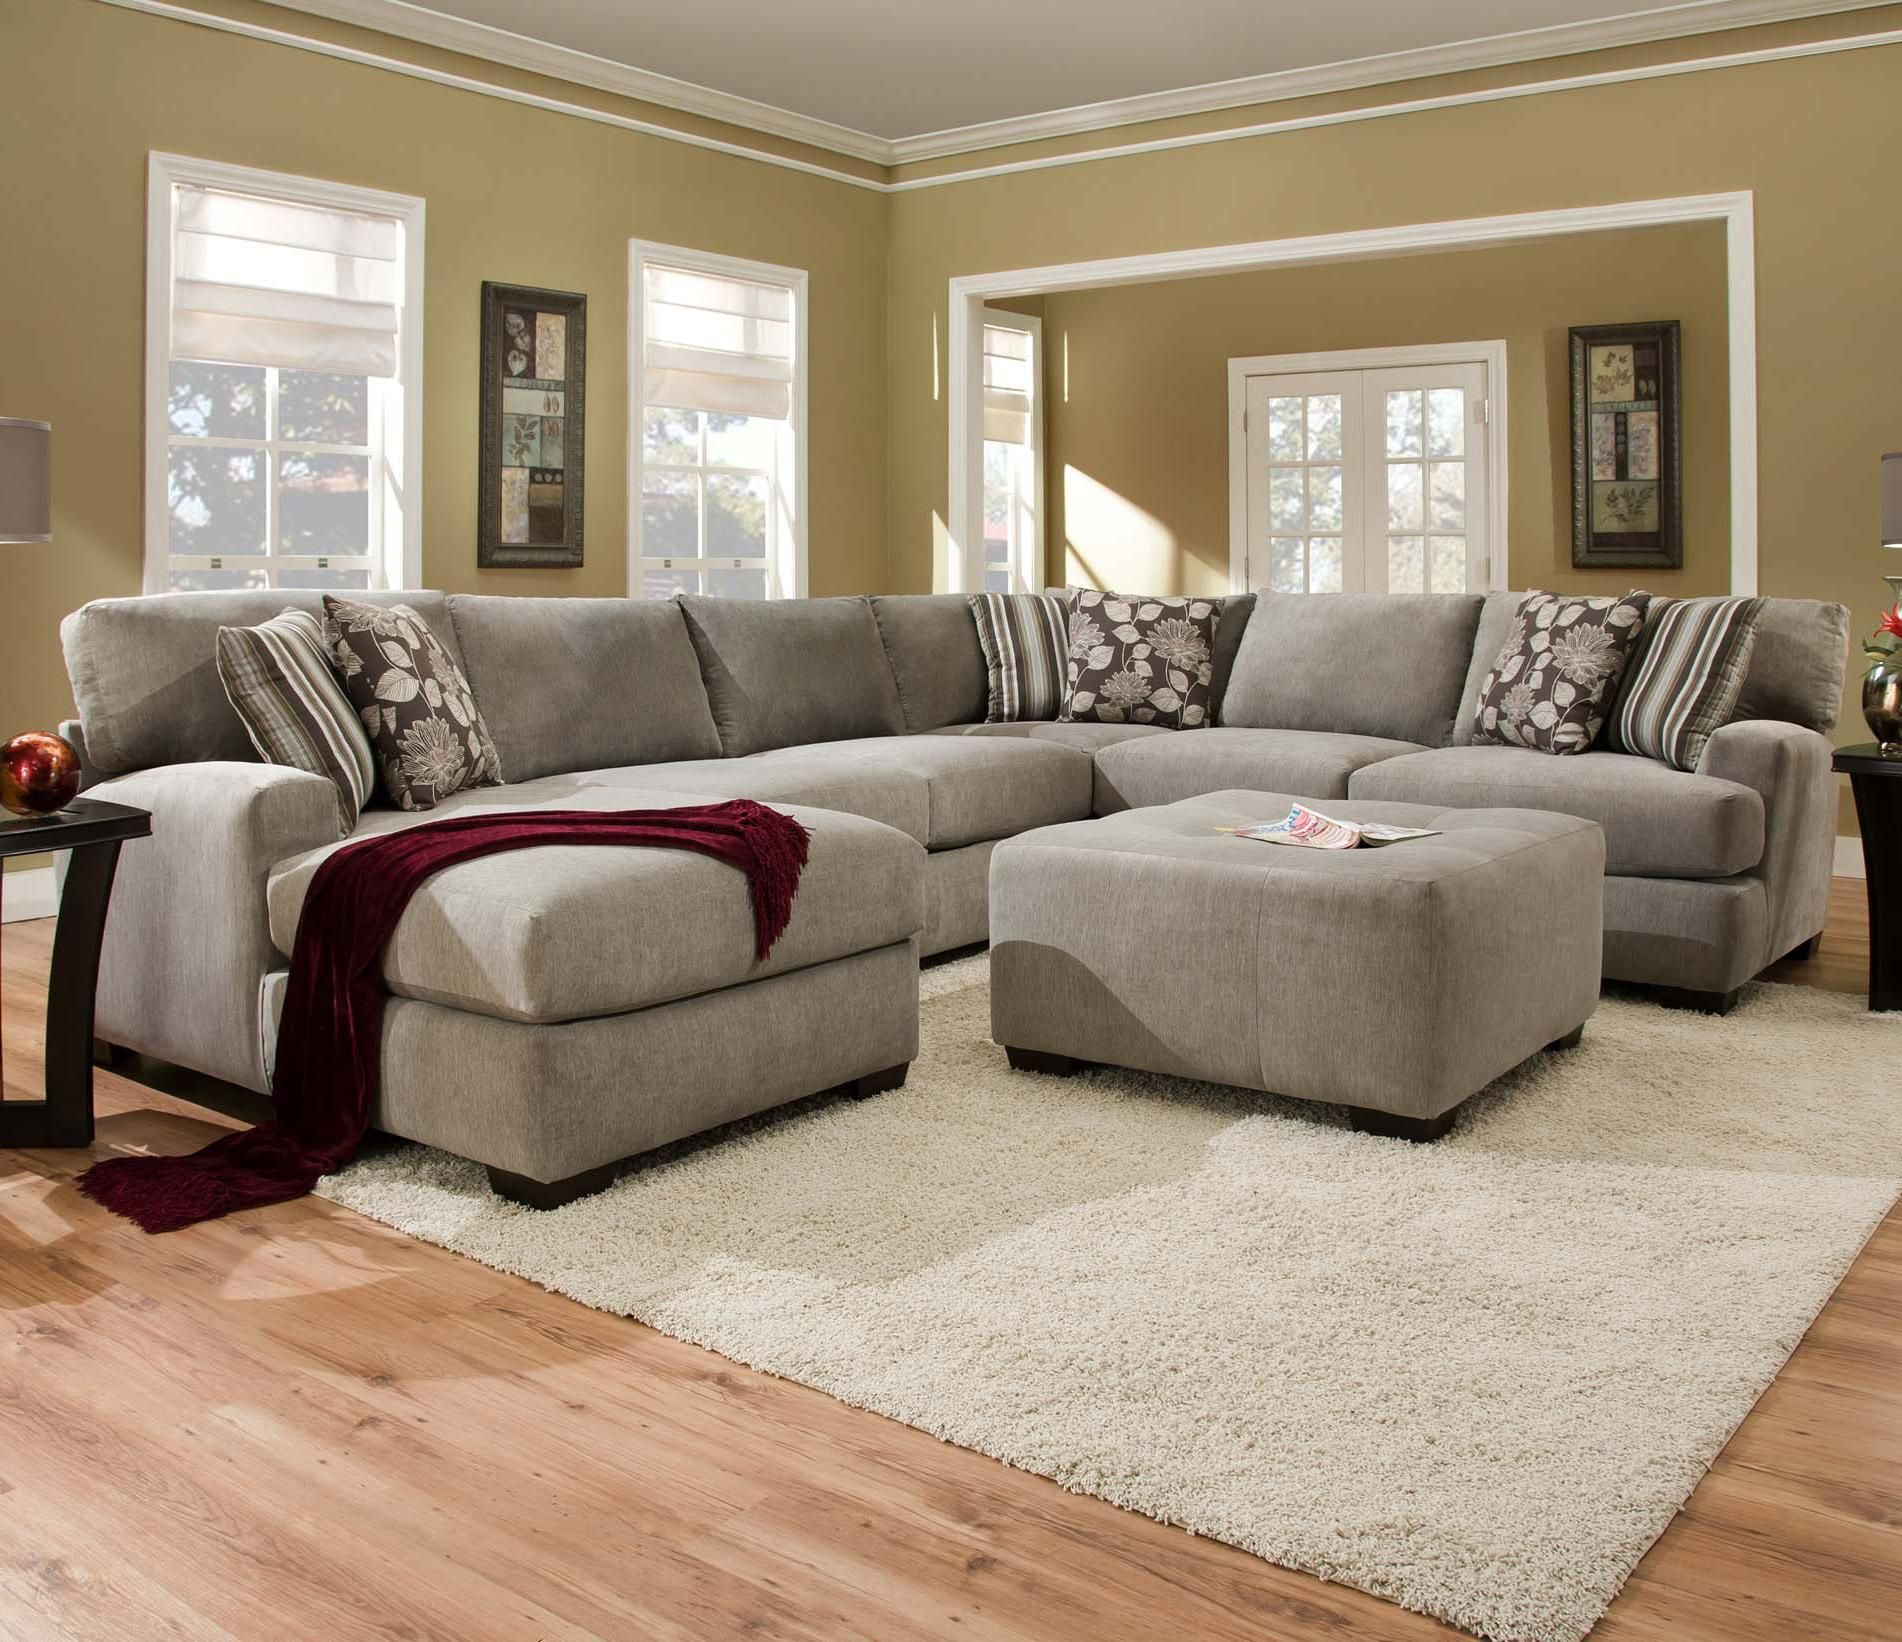 Sectional Sofa with 5 Seats 1 is a Chaise Alexandria VA